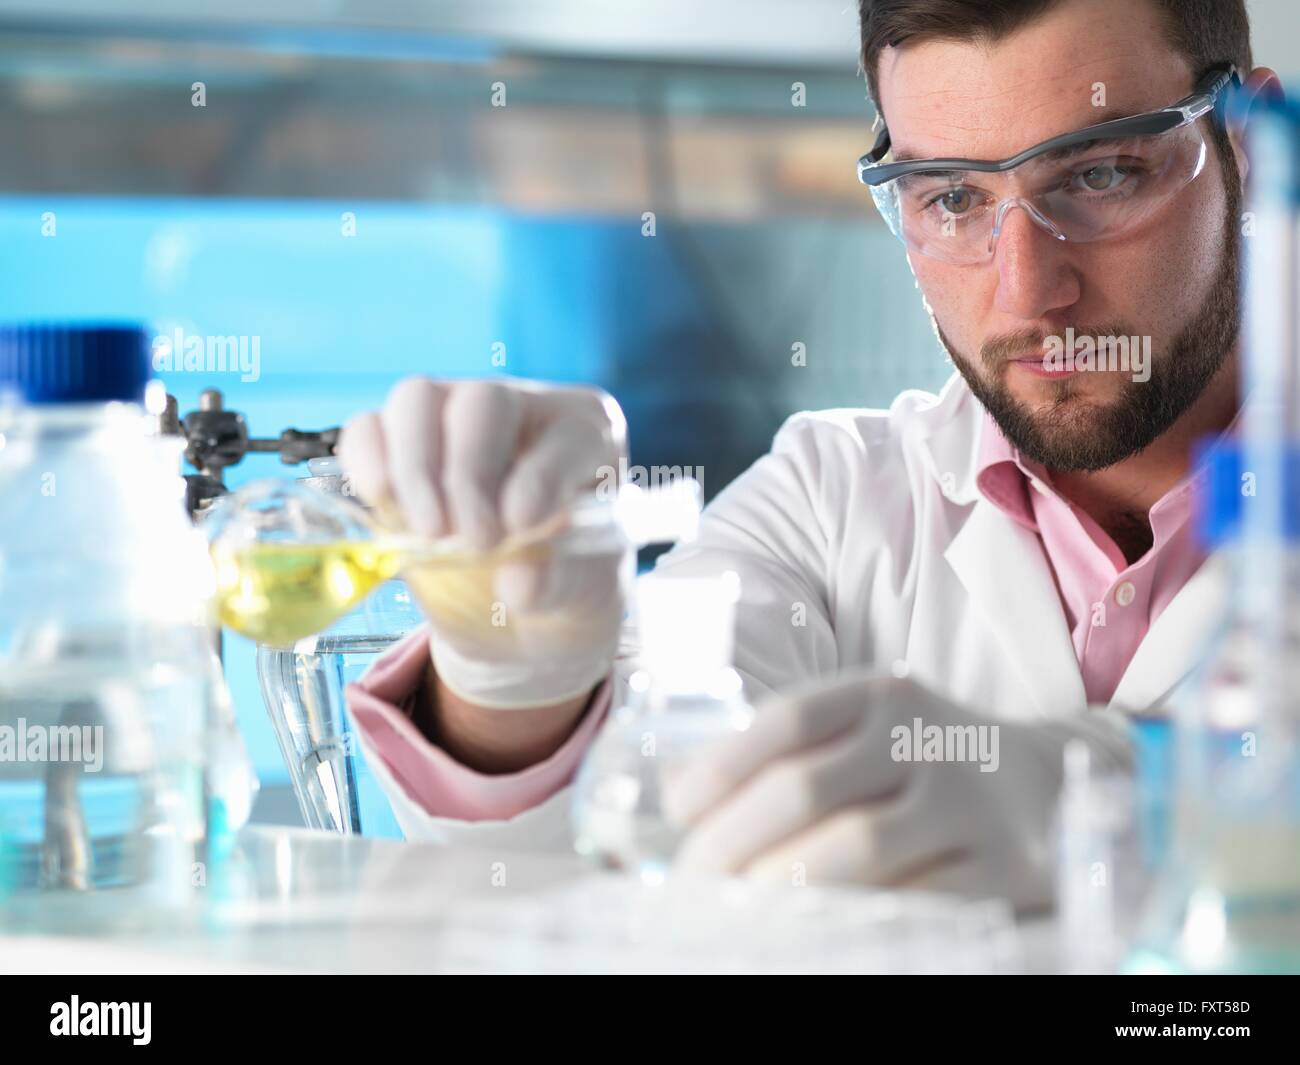 Scientist experimenting with chemical formula in laboratory - Stock Image